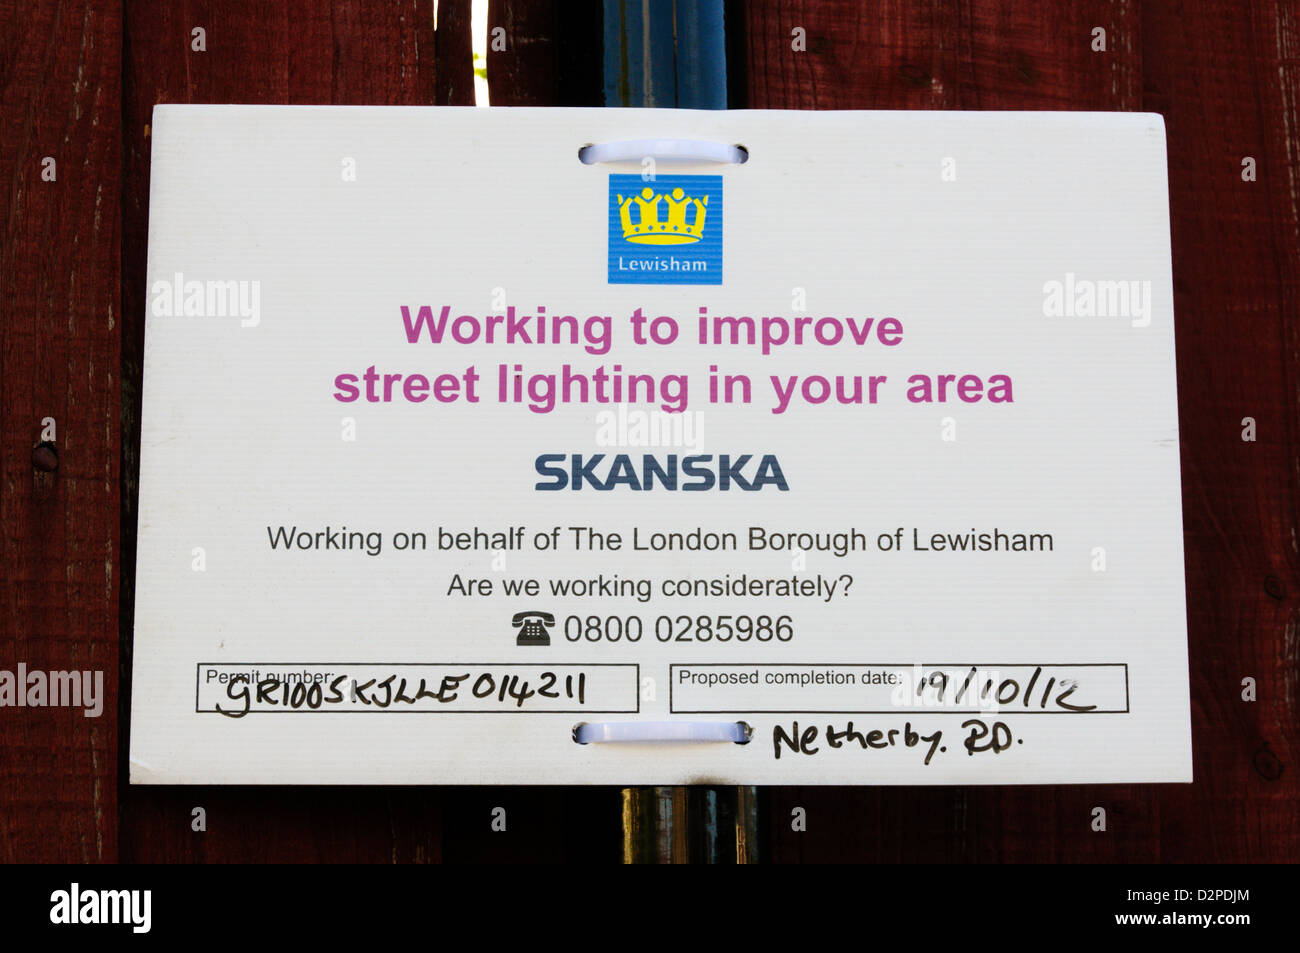 Sign concerning street lighting maintenance by Skanska. - Stock Image